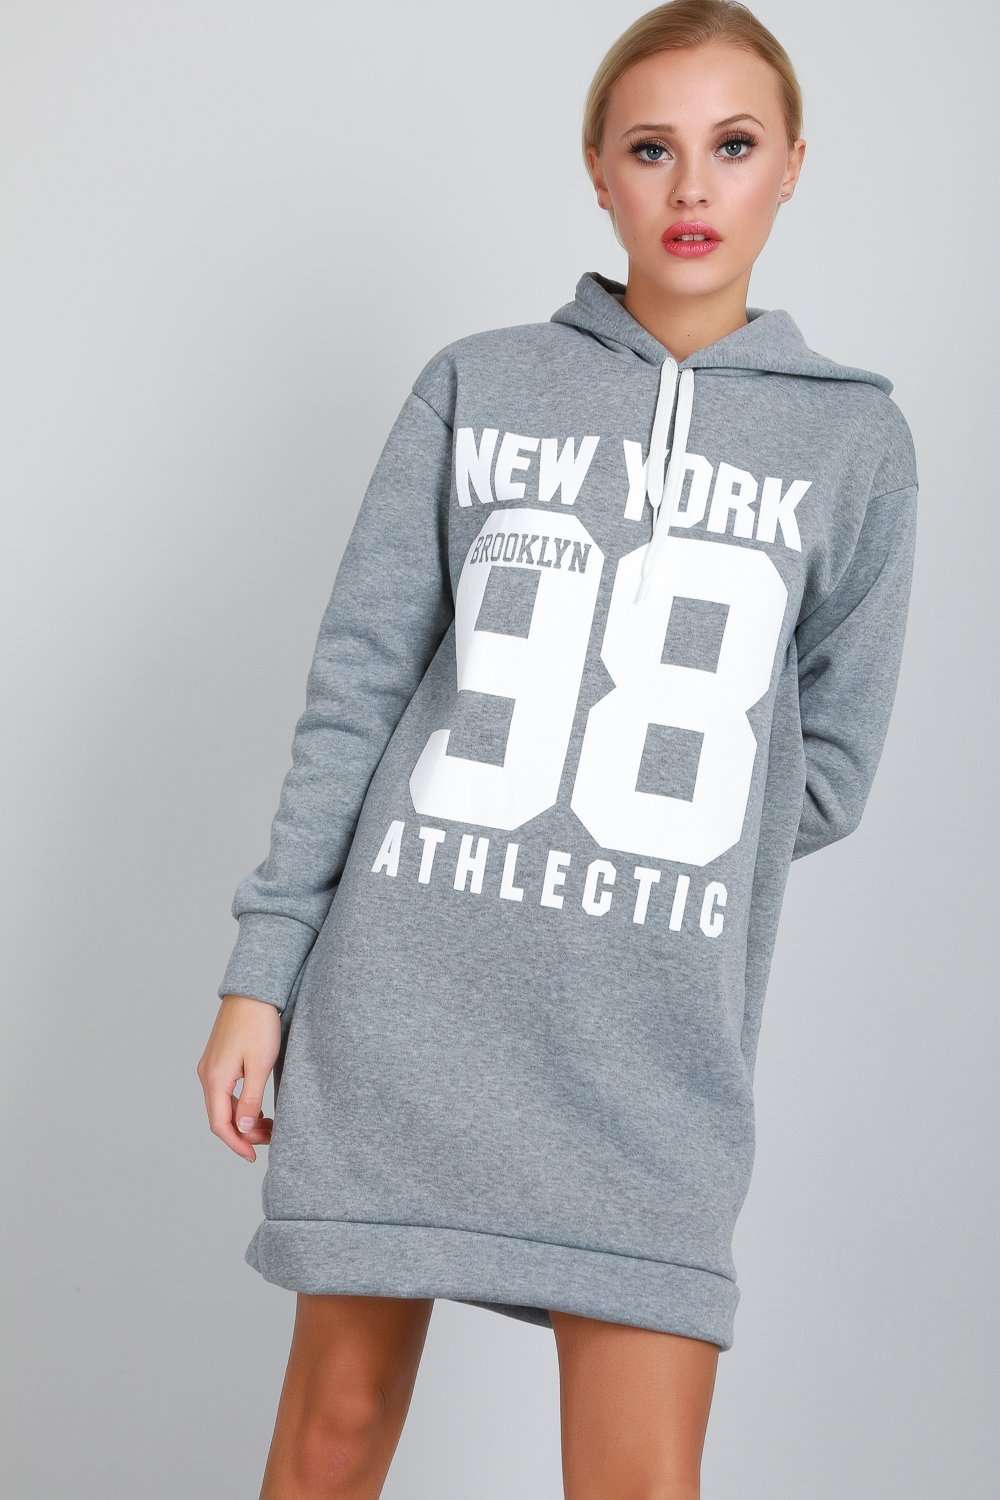 Long Sleeve New York Slogan Print Sweatshirt Dress - bejealous-com